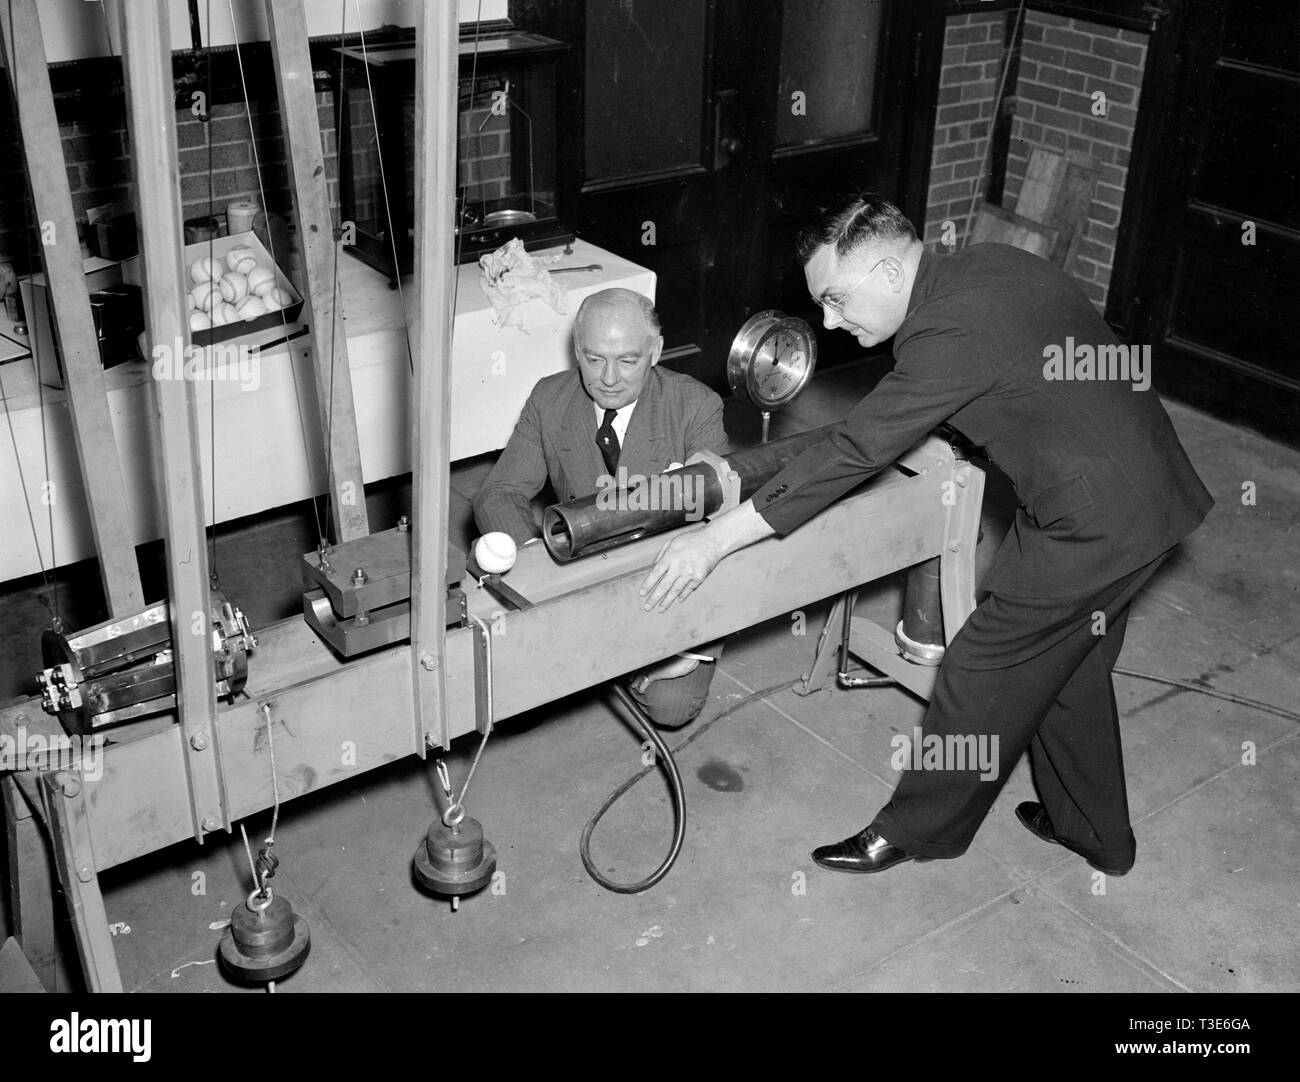 Government Waste - Bureau of Standards designs mechanical batter to determine liveliness of baseballs, an example of government wasting money during the Great Depression ca. 1938 - Stock Image